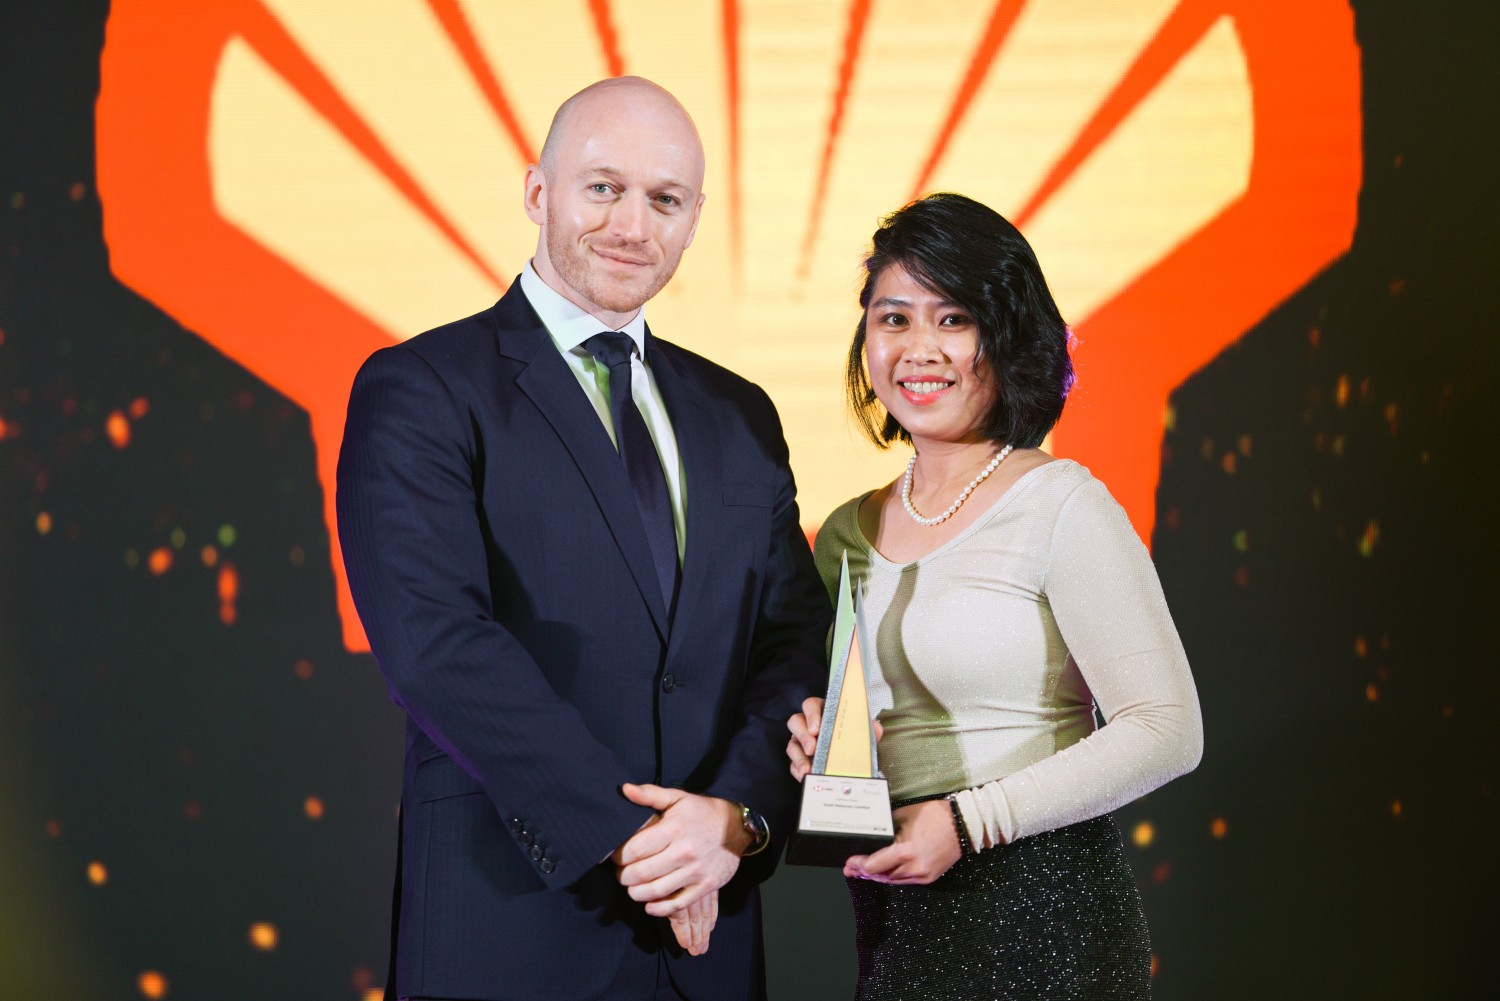 Picture L-R: Ross Fleming, Sales Director of GIH London, Chrysalis presenting the award to Mooi-Fung Farm, HR Director of Shell Malaysia